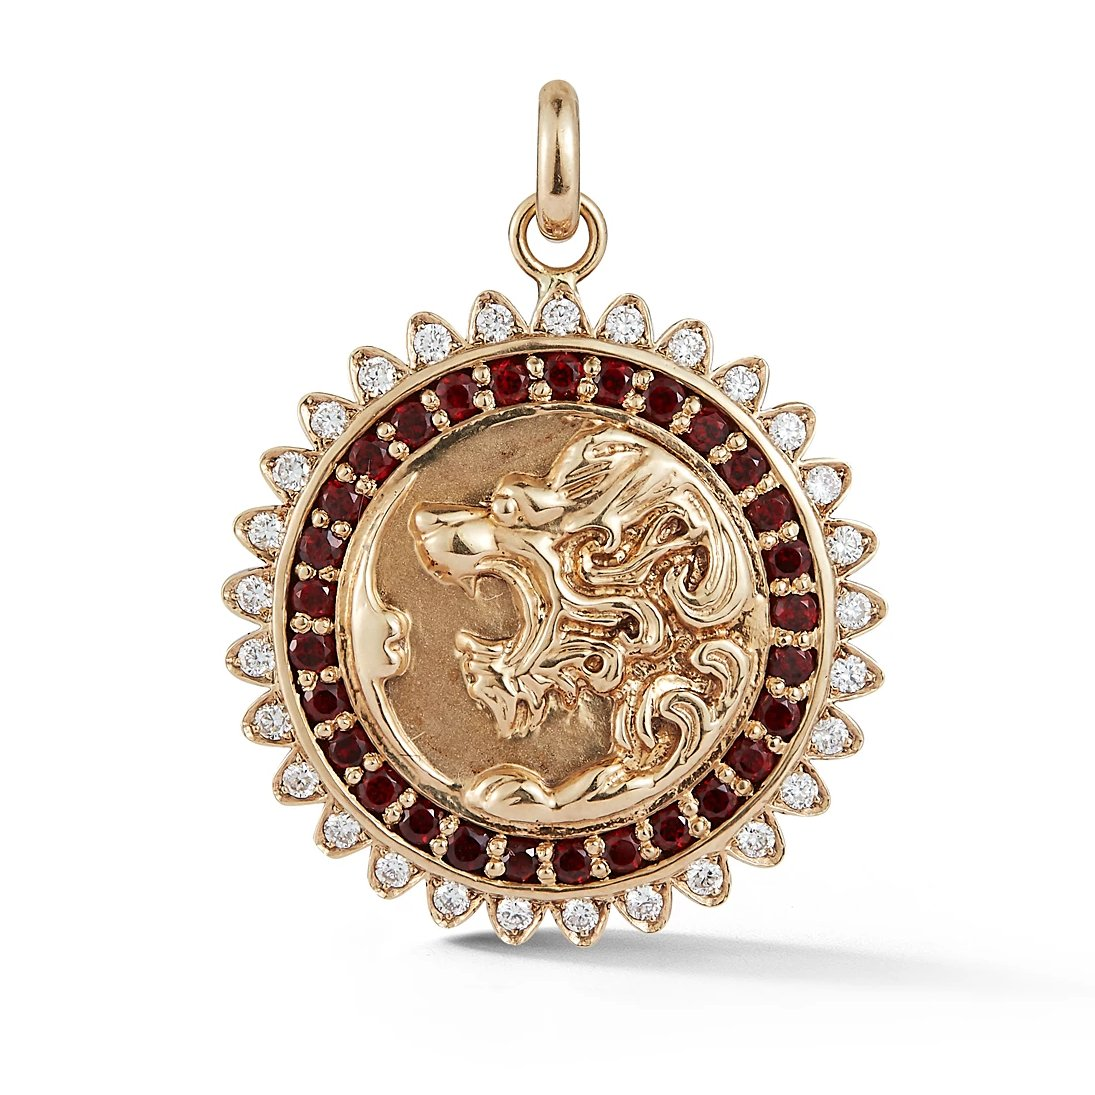 14K Gold Diamond & Garnet Victorian Lion Marion Medallion